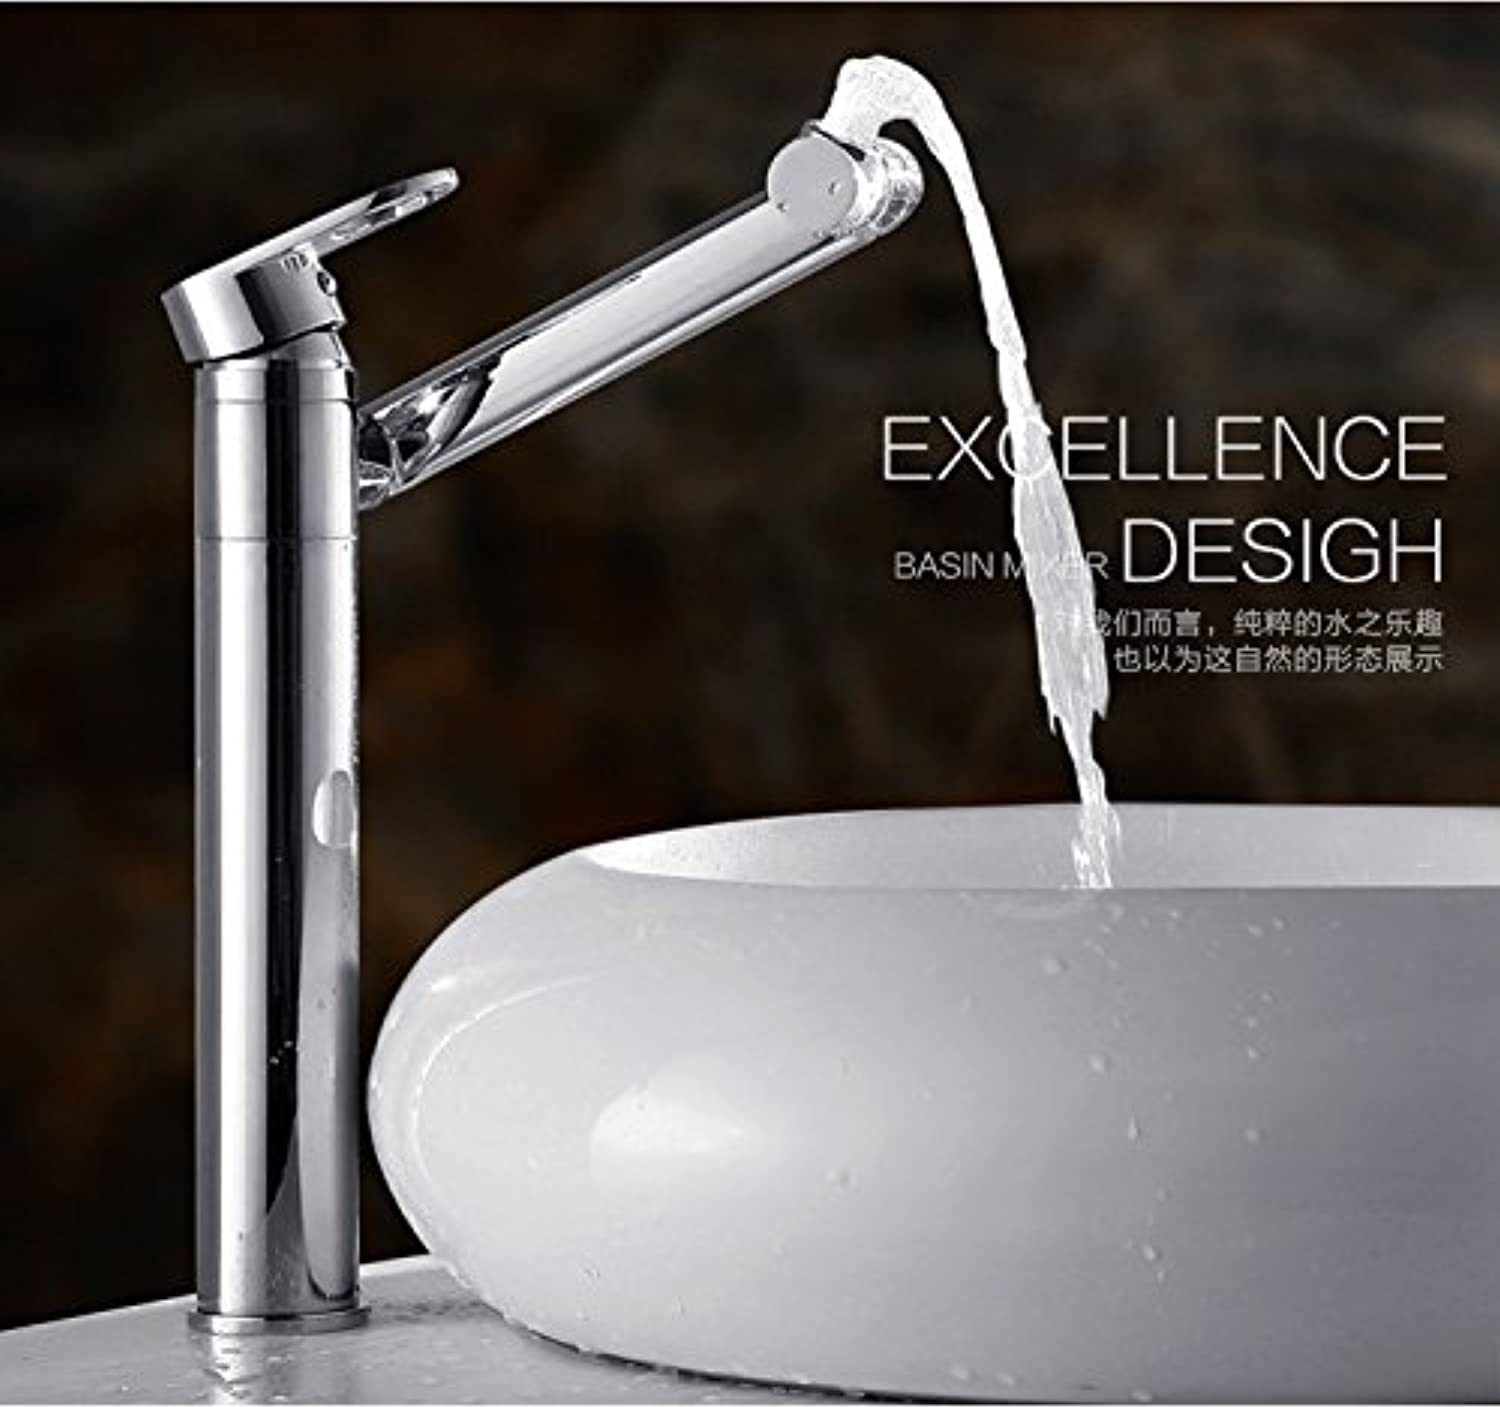 ETERNAL QUALITY Bathroom Sink Basin Tap Brass Mixer Tap Washroom Mixer Faucet The brass faucets single hole basin faucet hot and cold basin faucet swivel fittings with hi